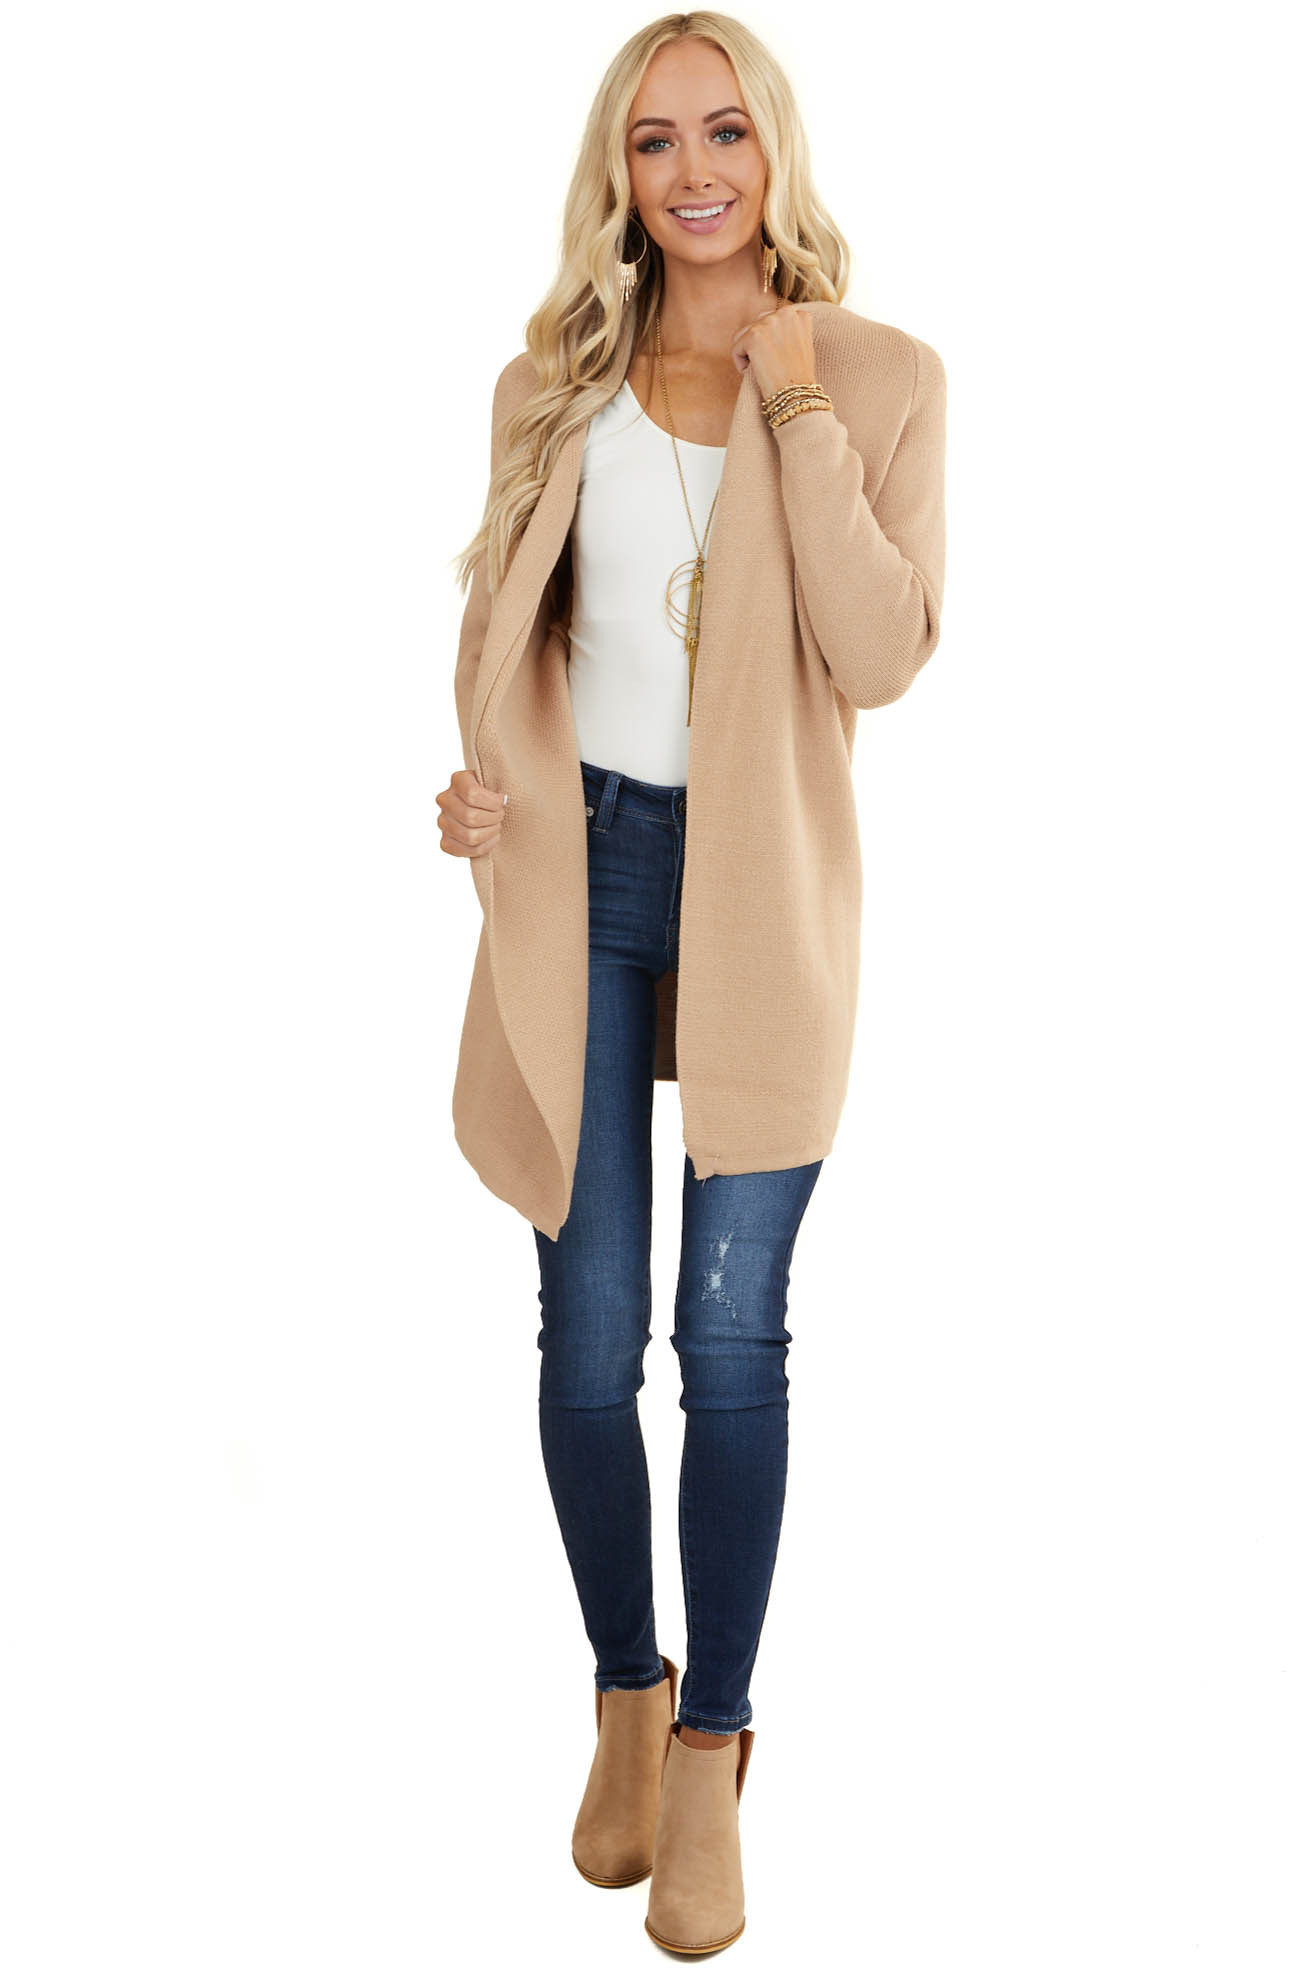 Beige Soft Knit Open Front Cardigan with Long Sleeves